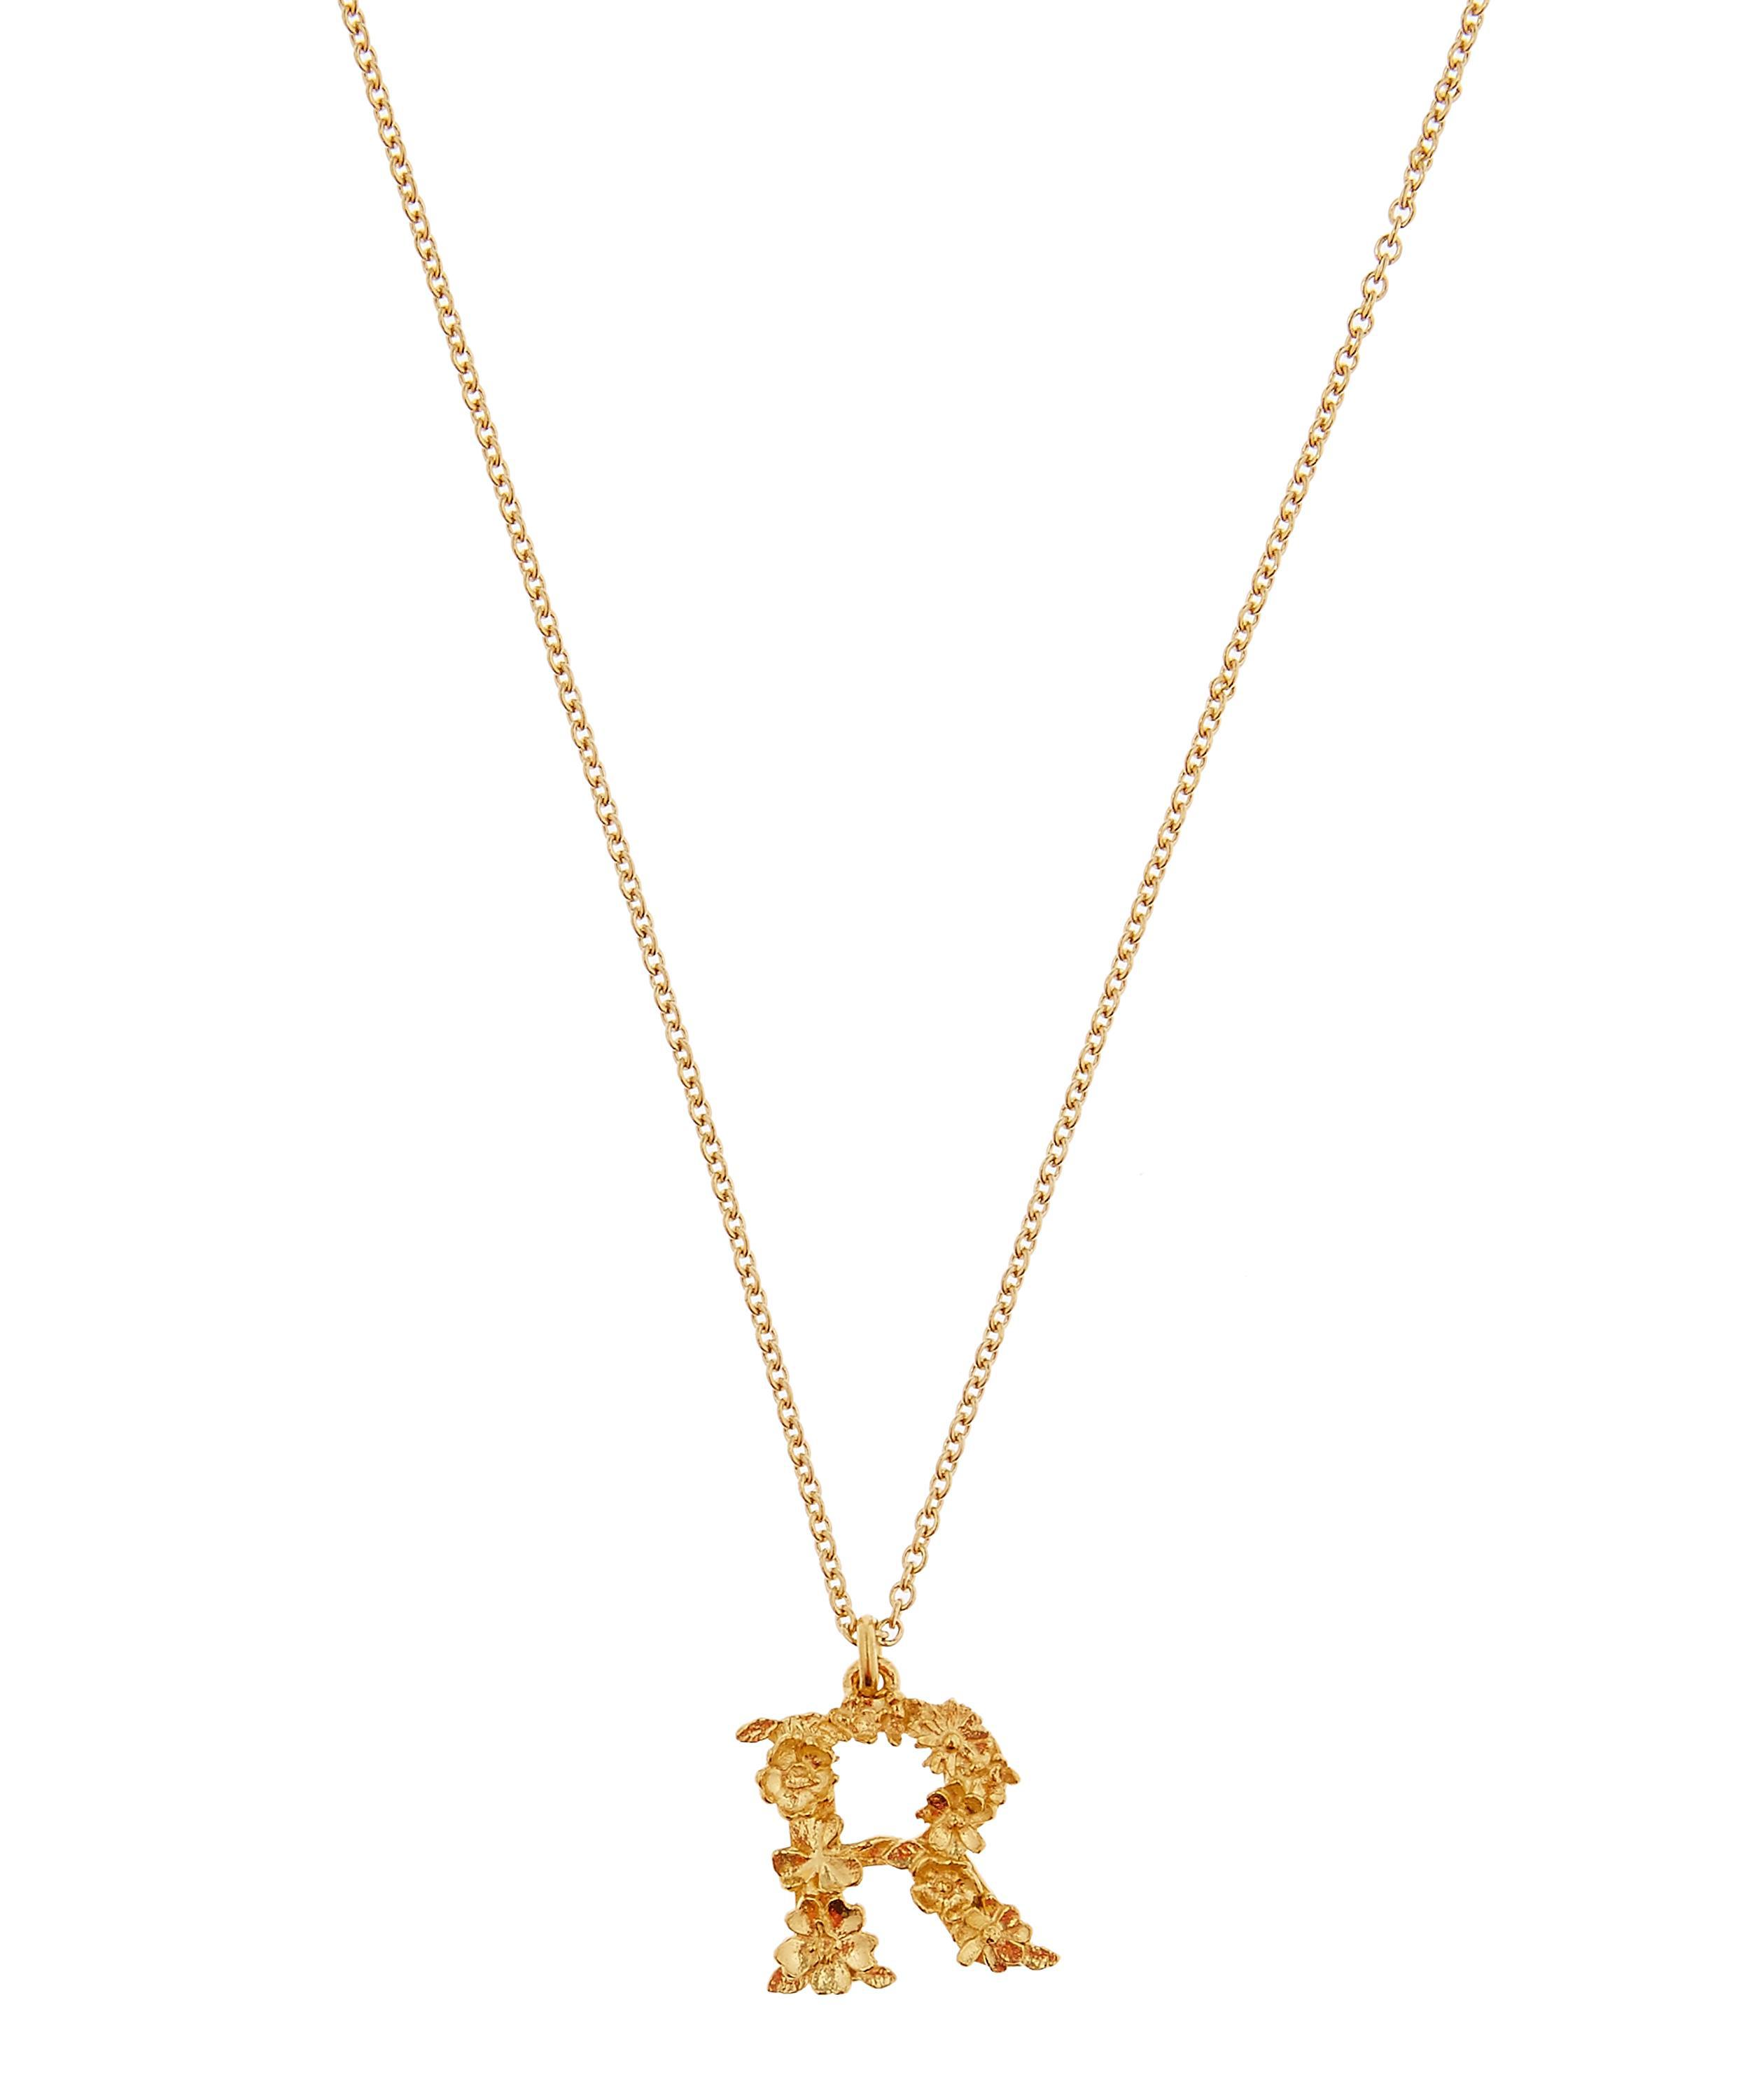 eng lv alphabet necklace me front louis fashion r us accessories jewelry letter vuitton products